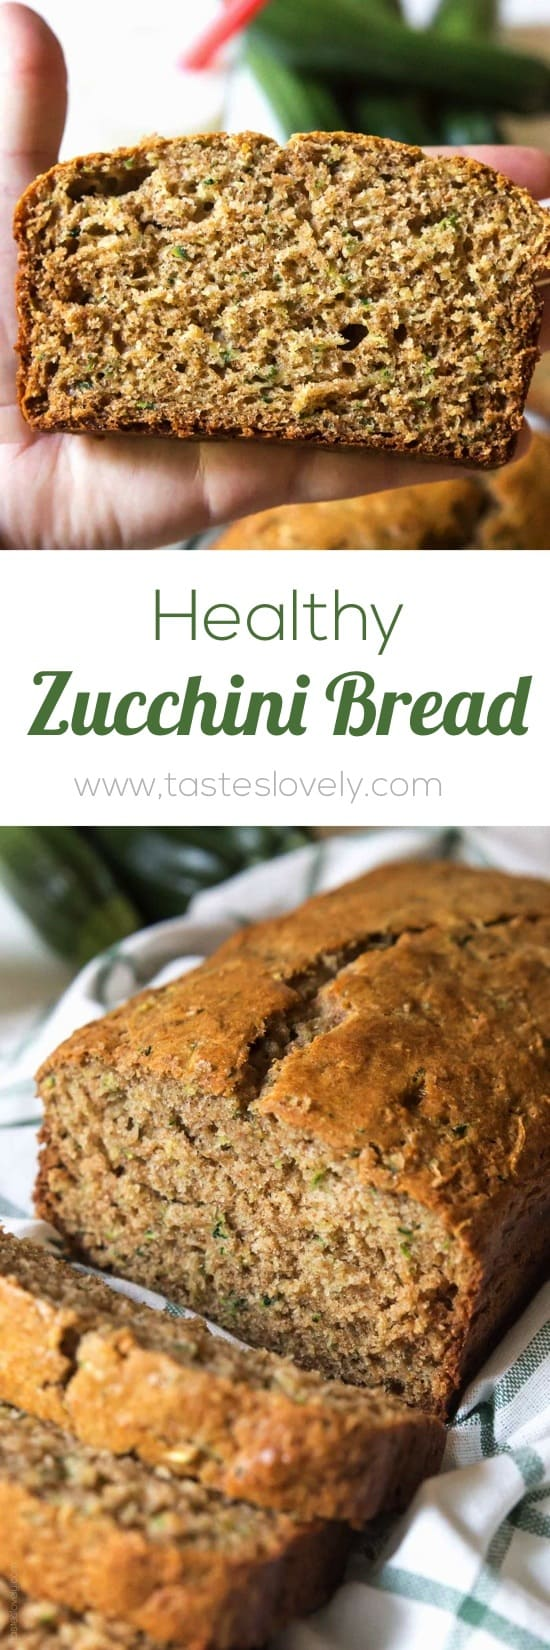 Healthy Zucchini Bread Tastes Lovely